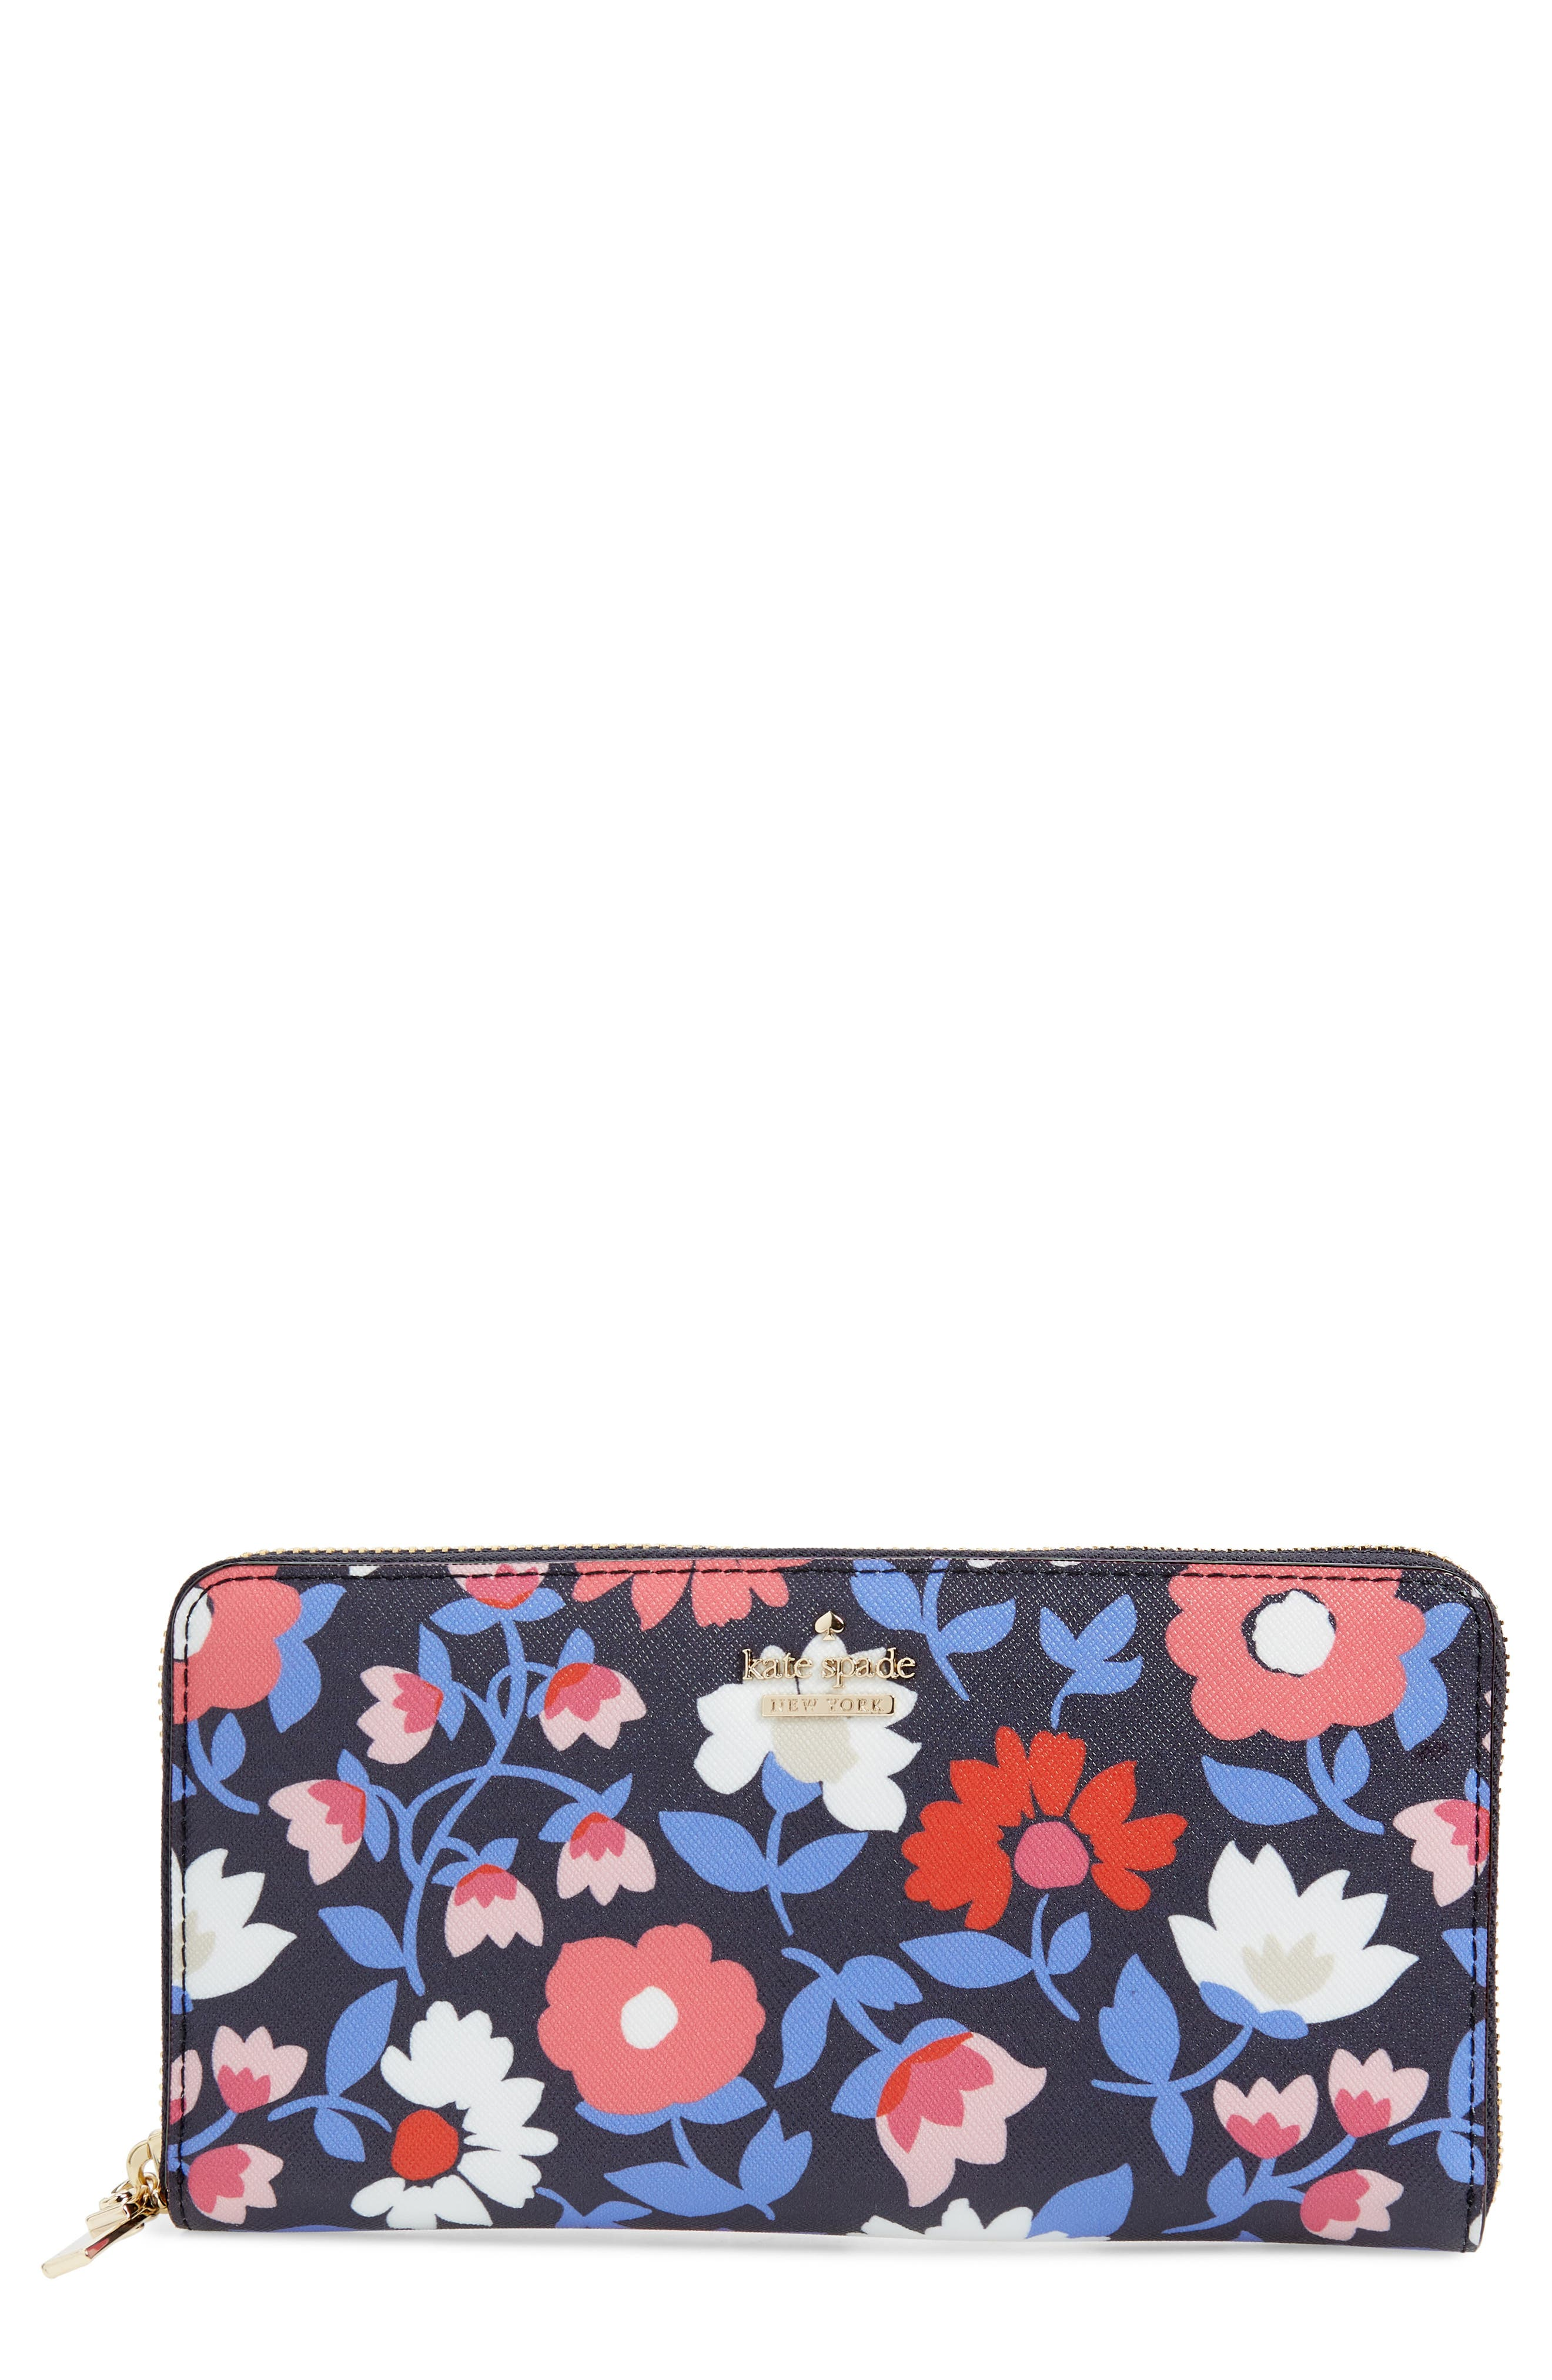 cameron street - daisy lacey zip around wallet,                         Main,                         color, Multi